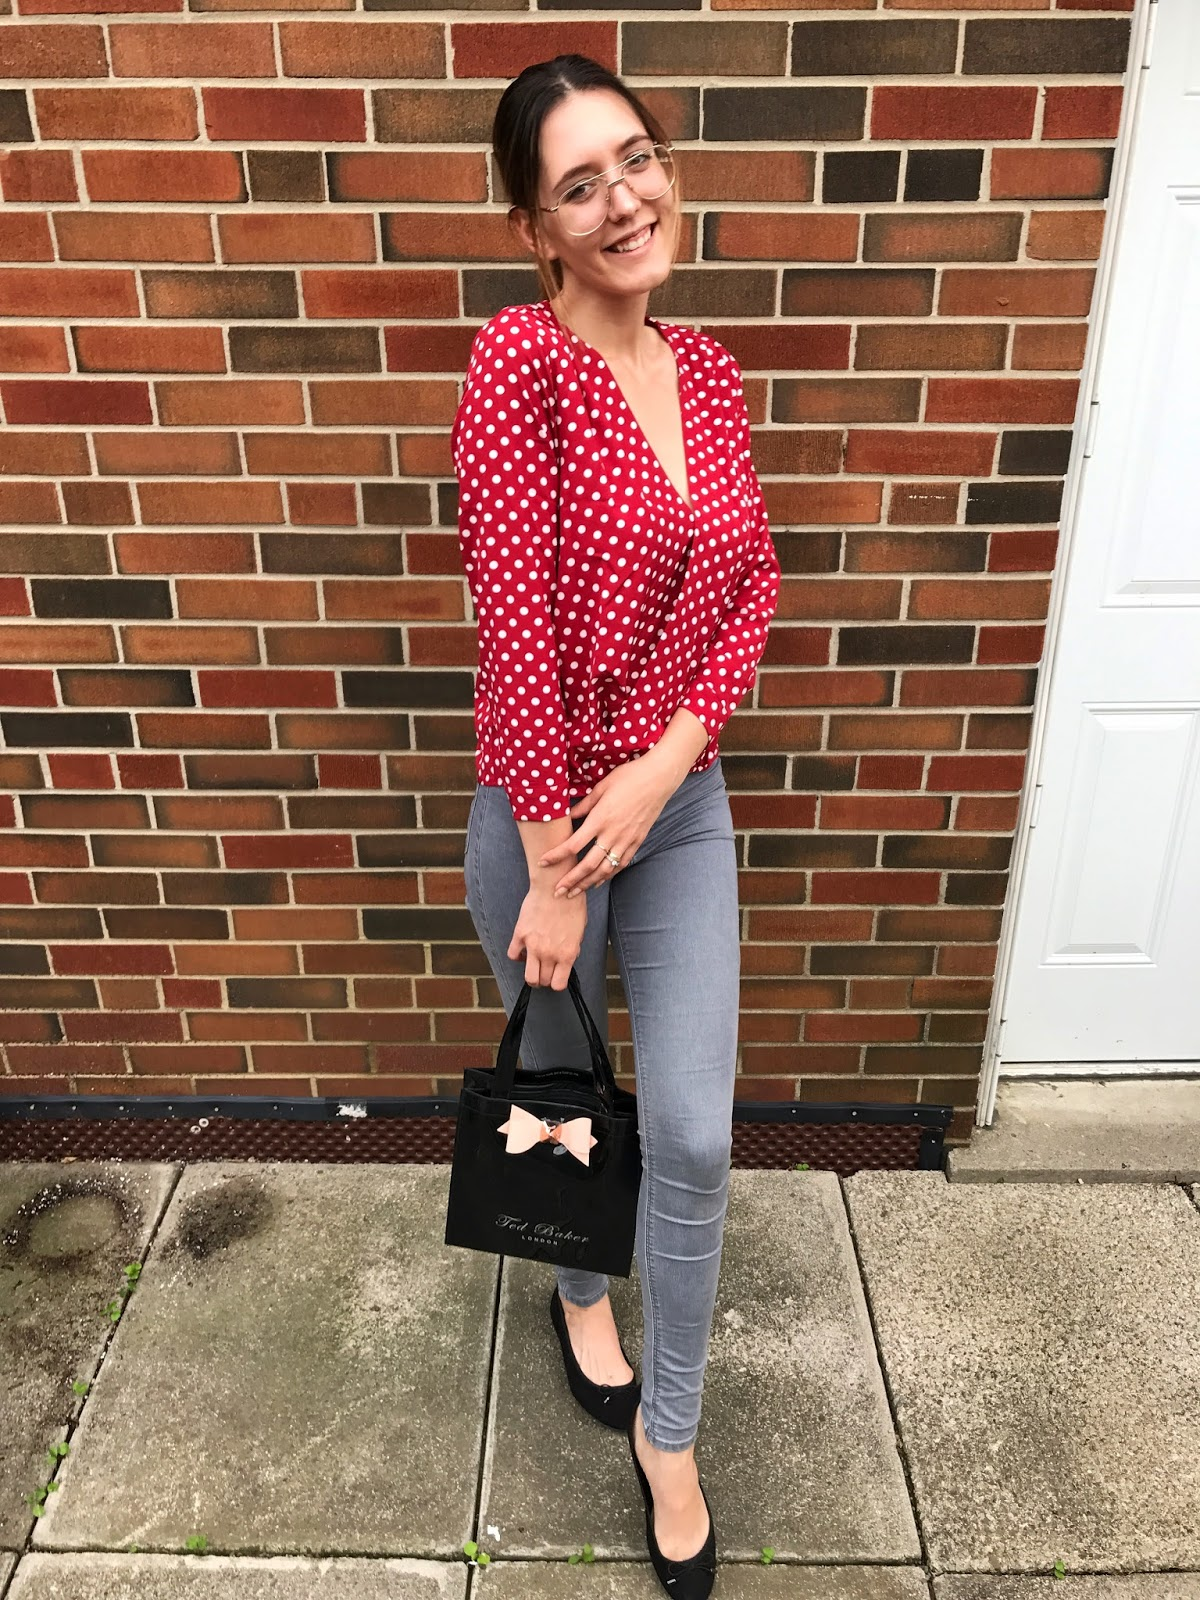 Red blouse with white polka dots